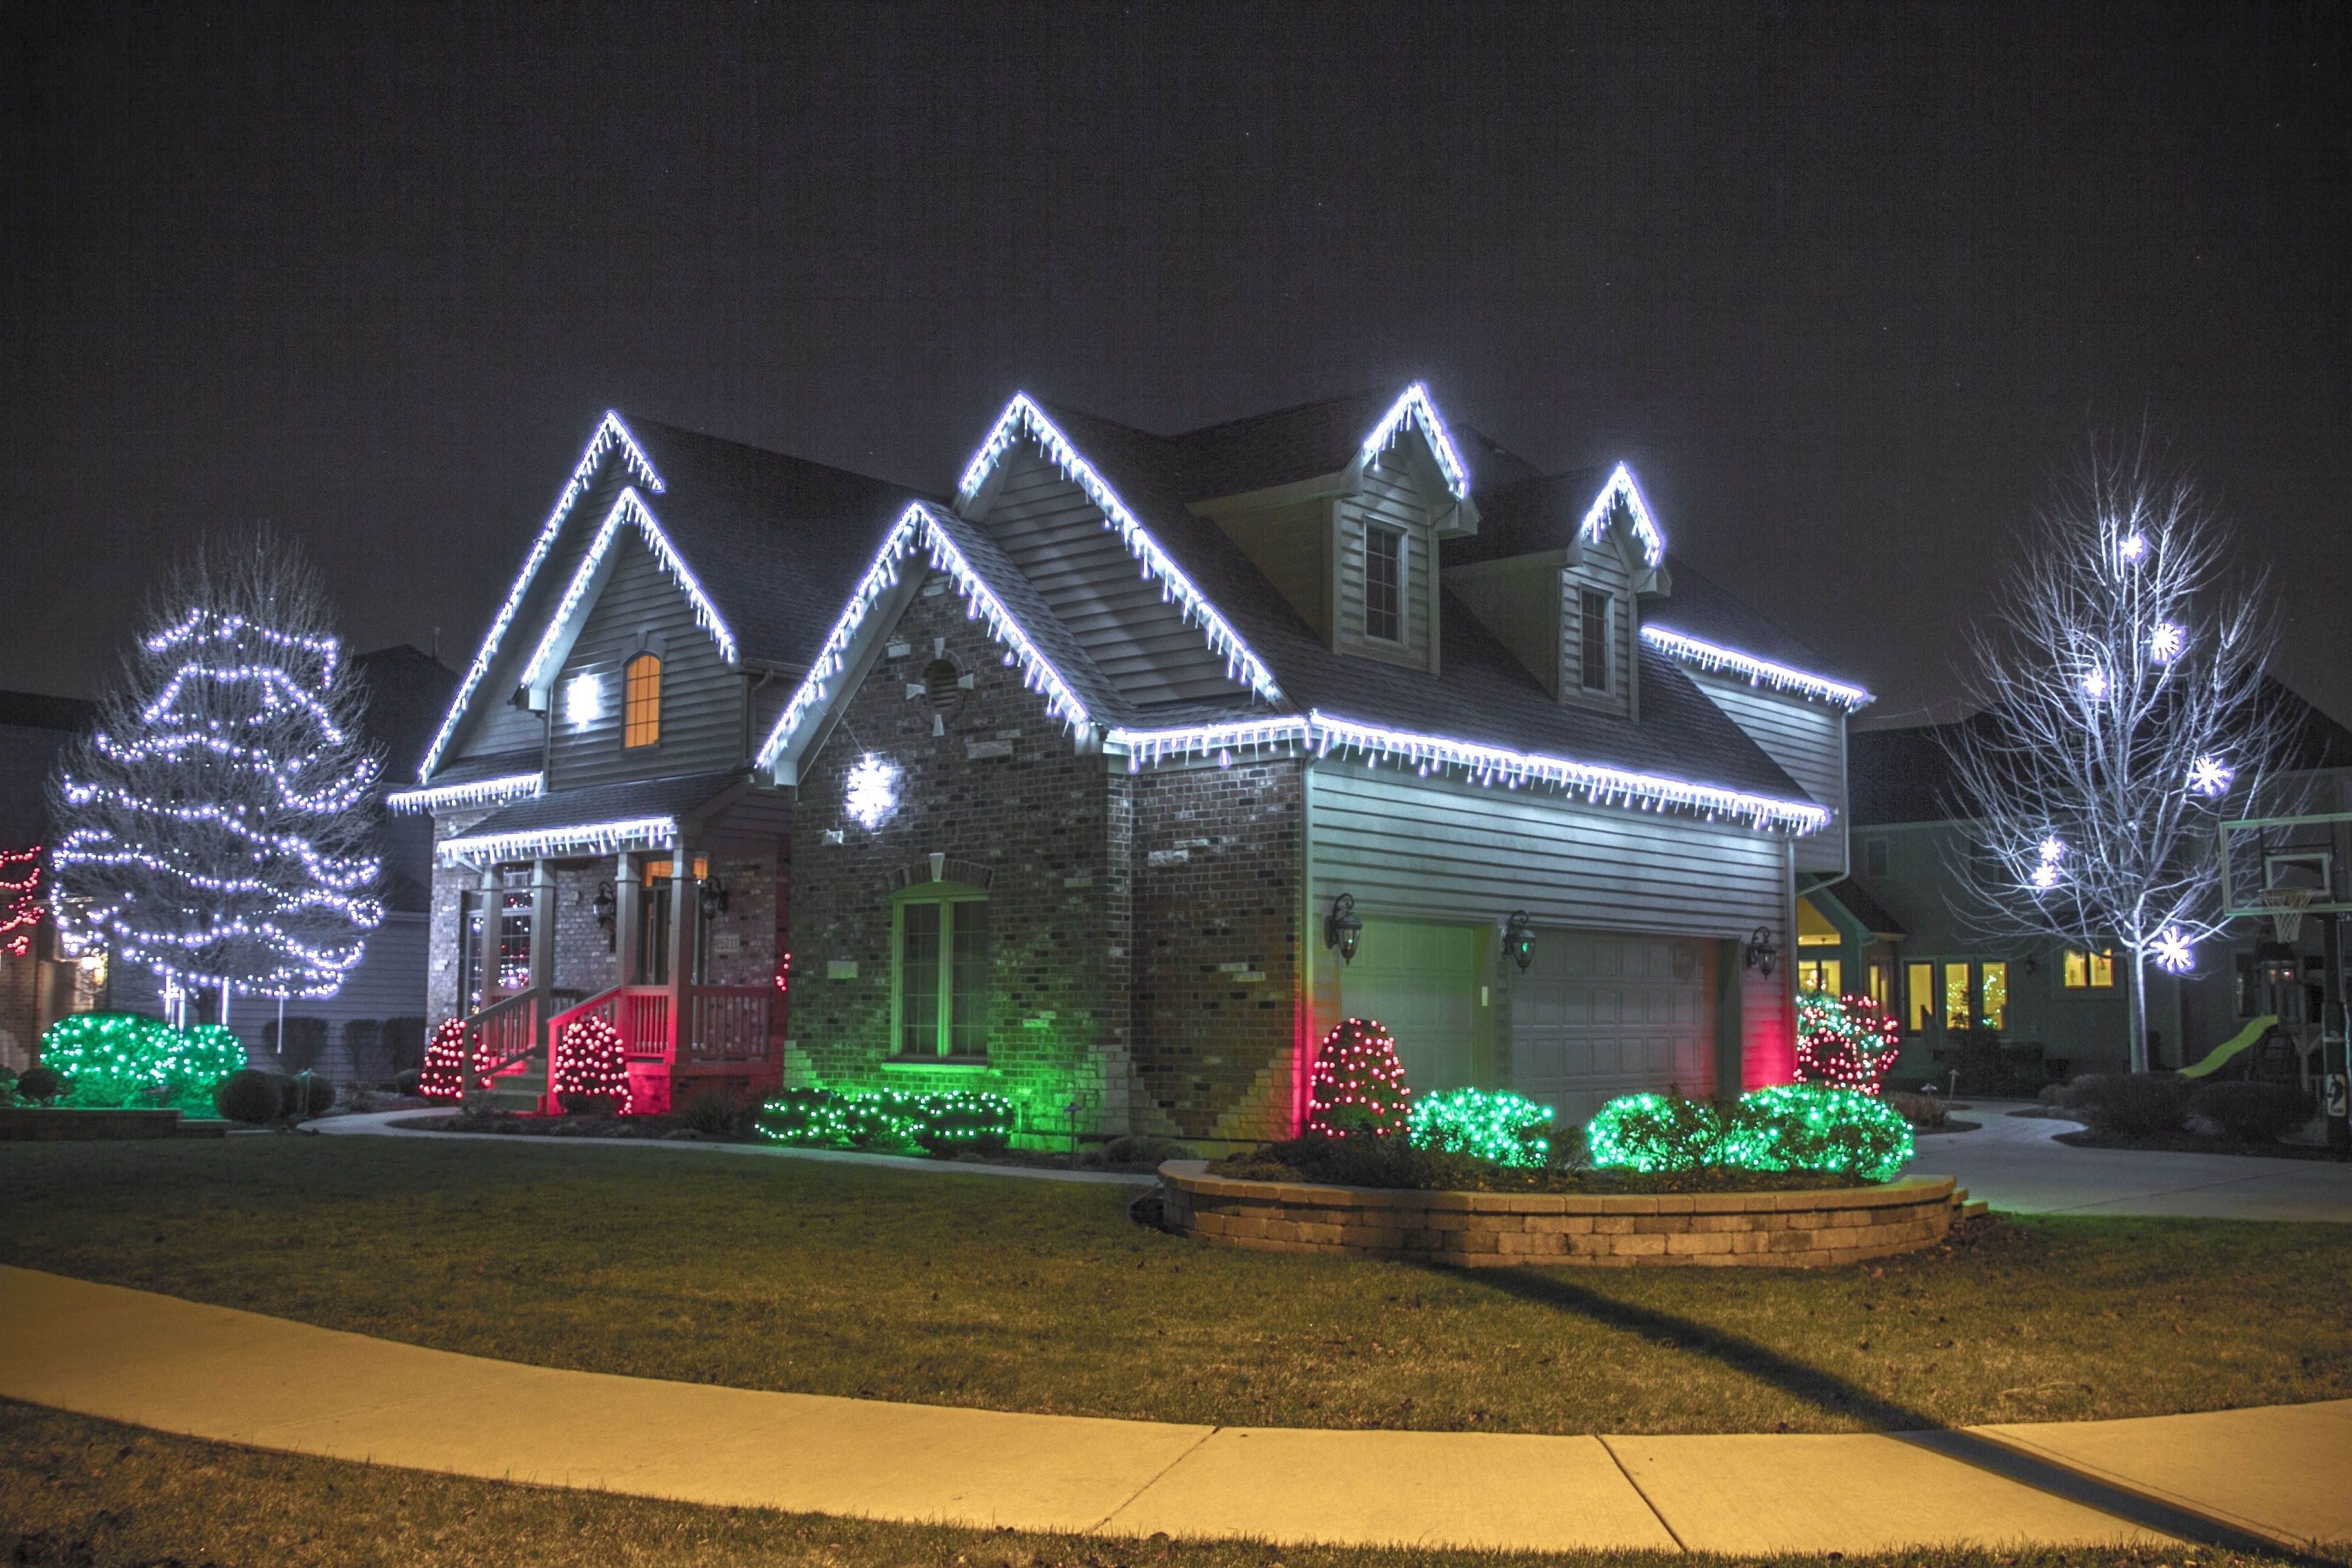 Widely Used Hanging Outdoor Christmas Lights In Roof Throughout Outdoor Christmas Lights Ideas For The Roof (View 9 of 20)